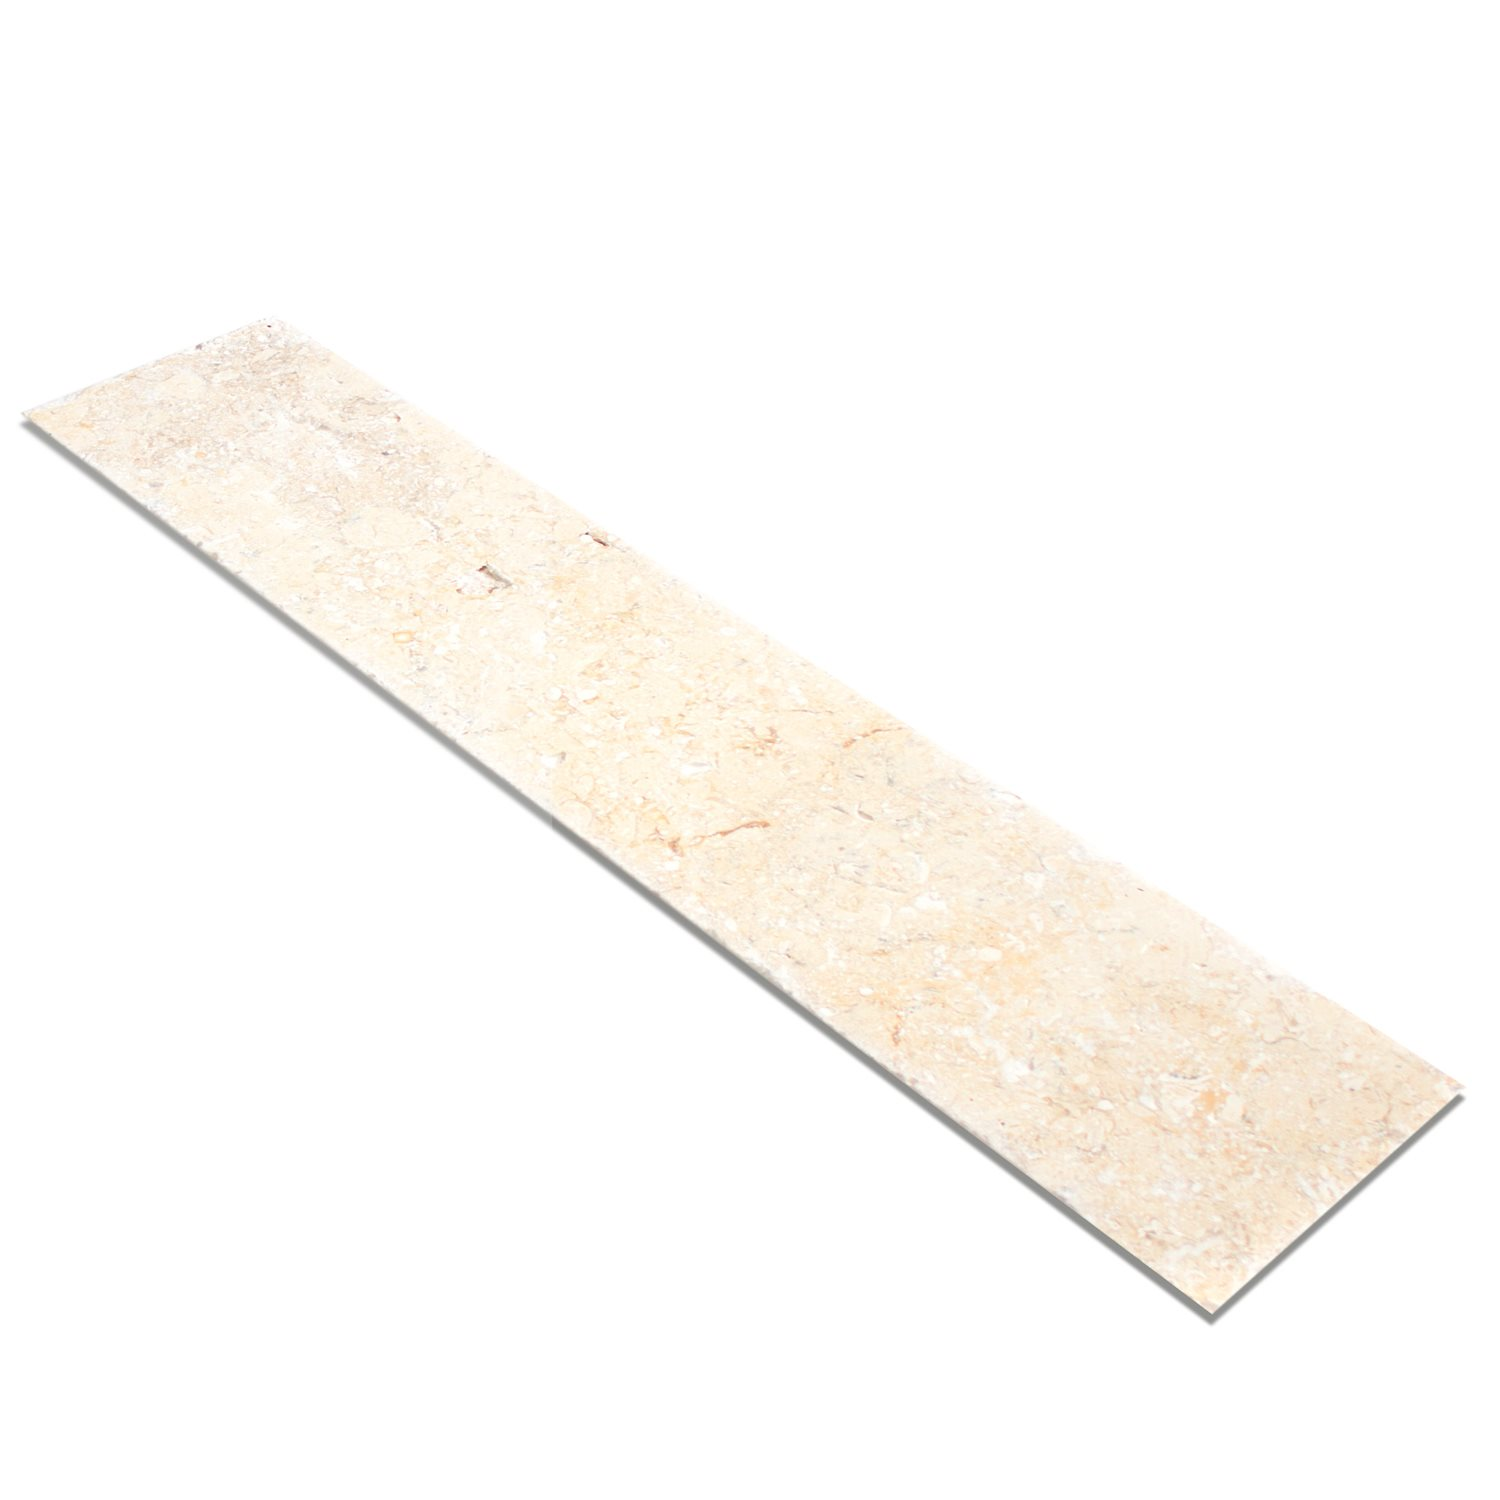 Skirting limestone natural stone tiles garbagna beige tm33885 skirting limestone natural stone tiles garbagna beige doublecrazyfo Image collections